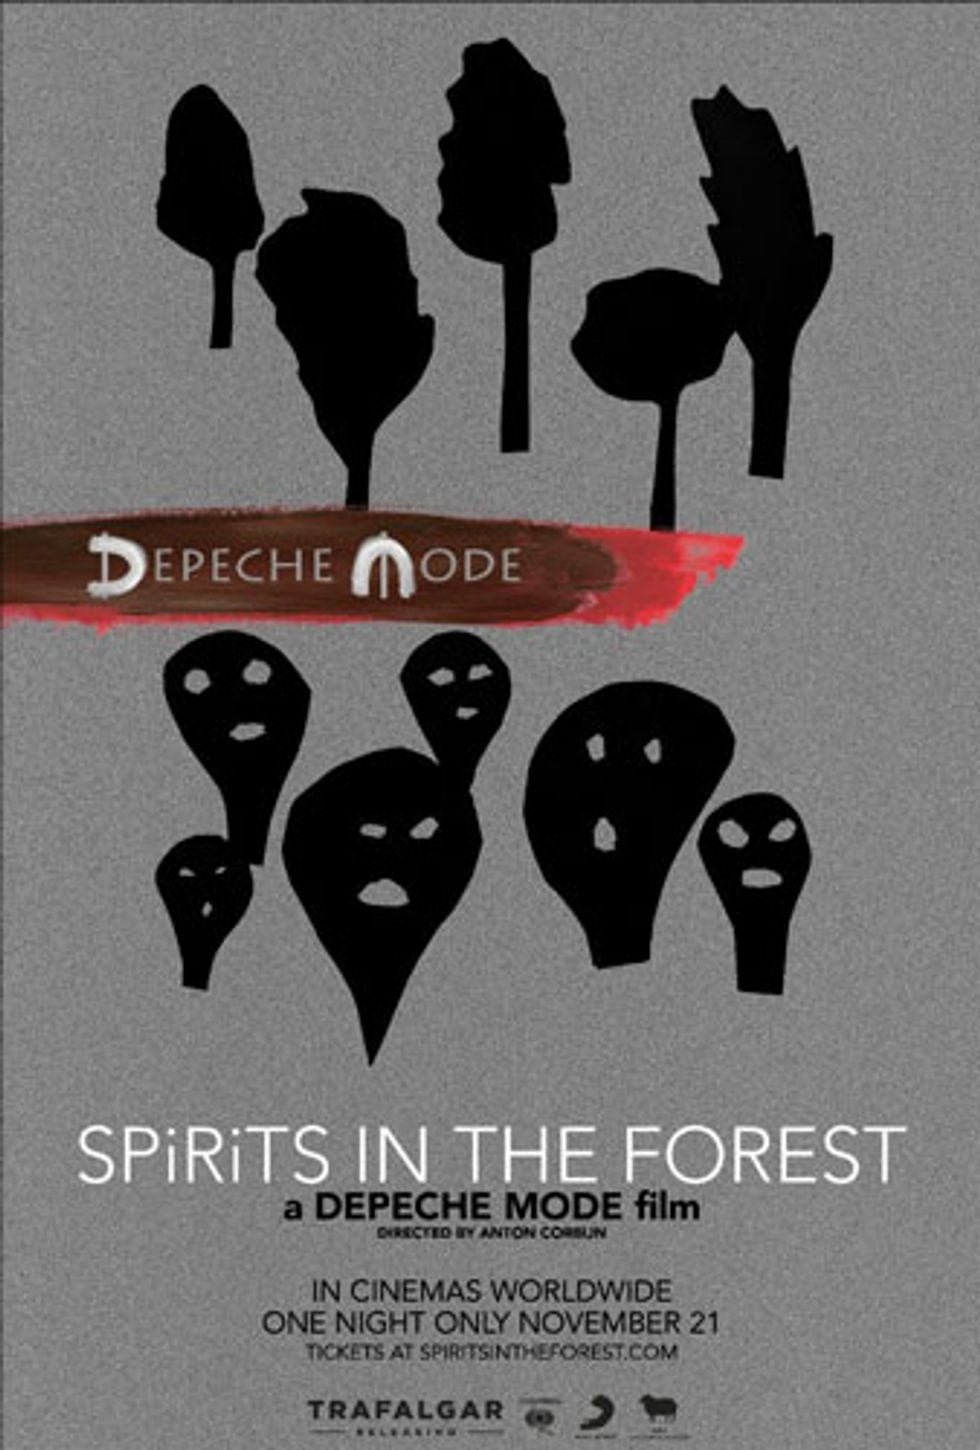 Depeche Mode Announces 'Spirits in the Forest' Documentary